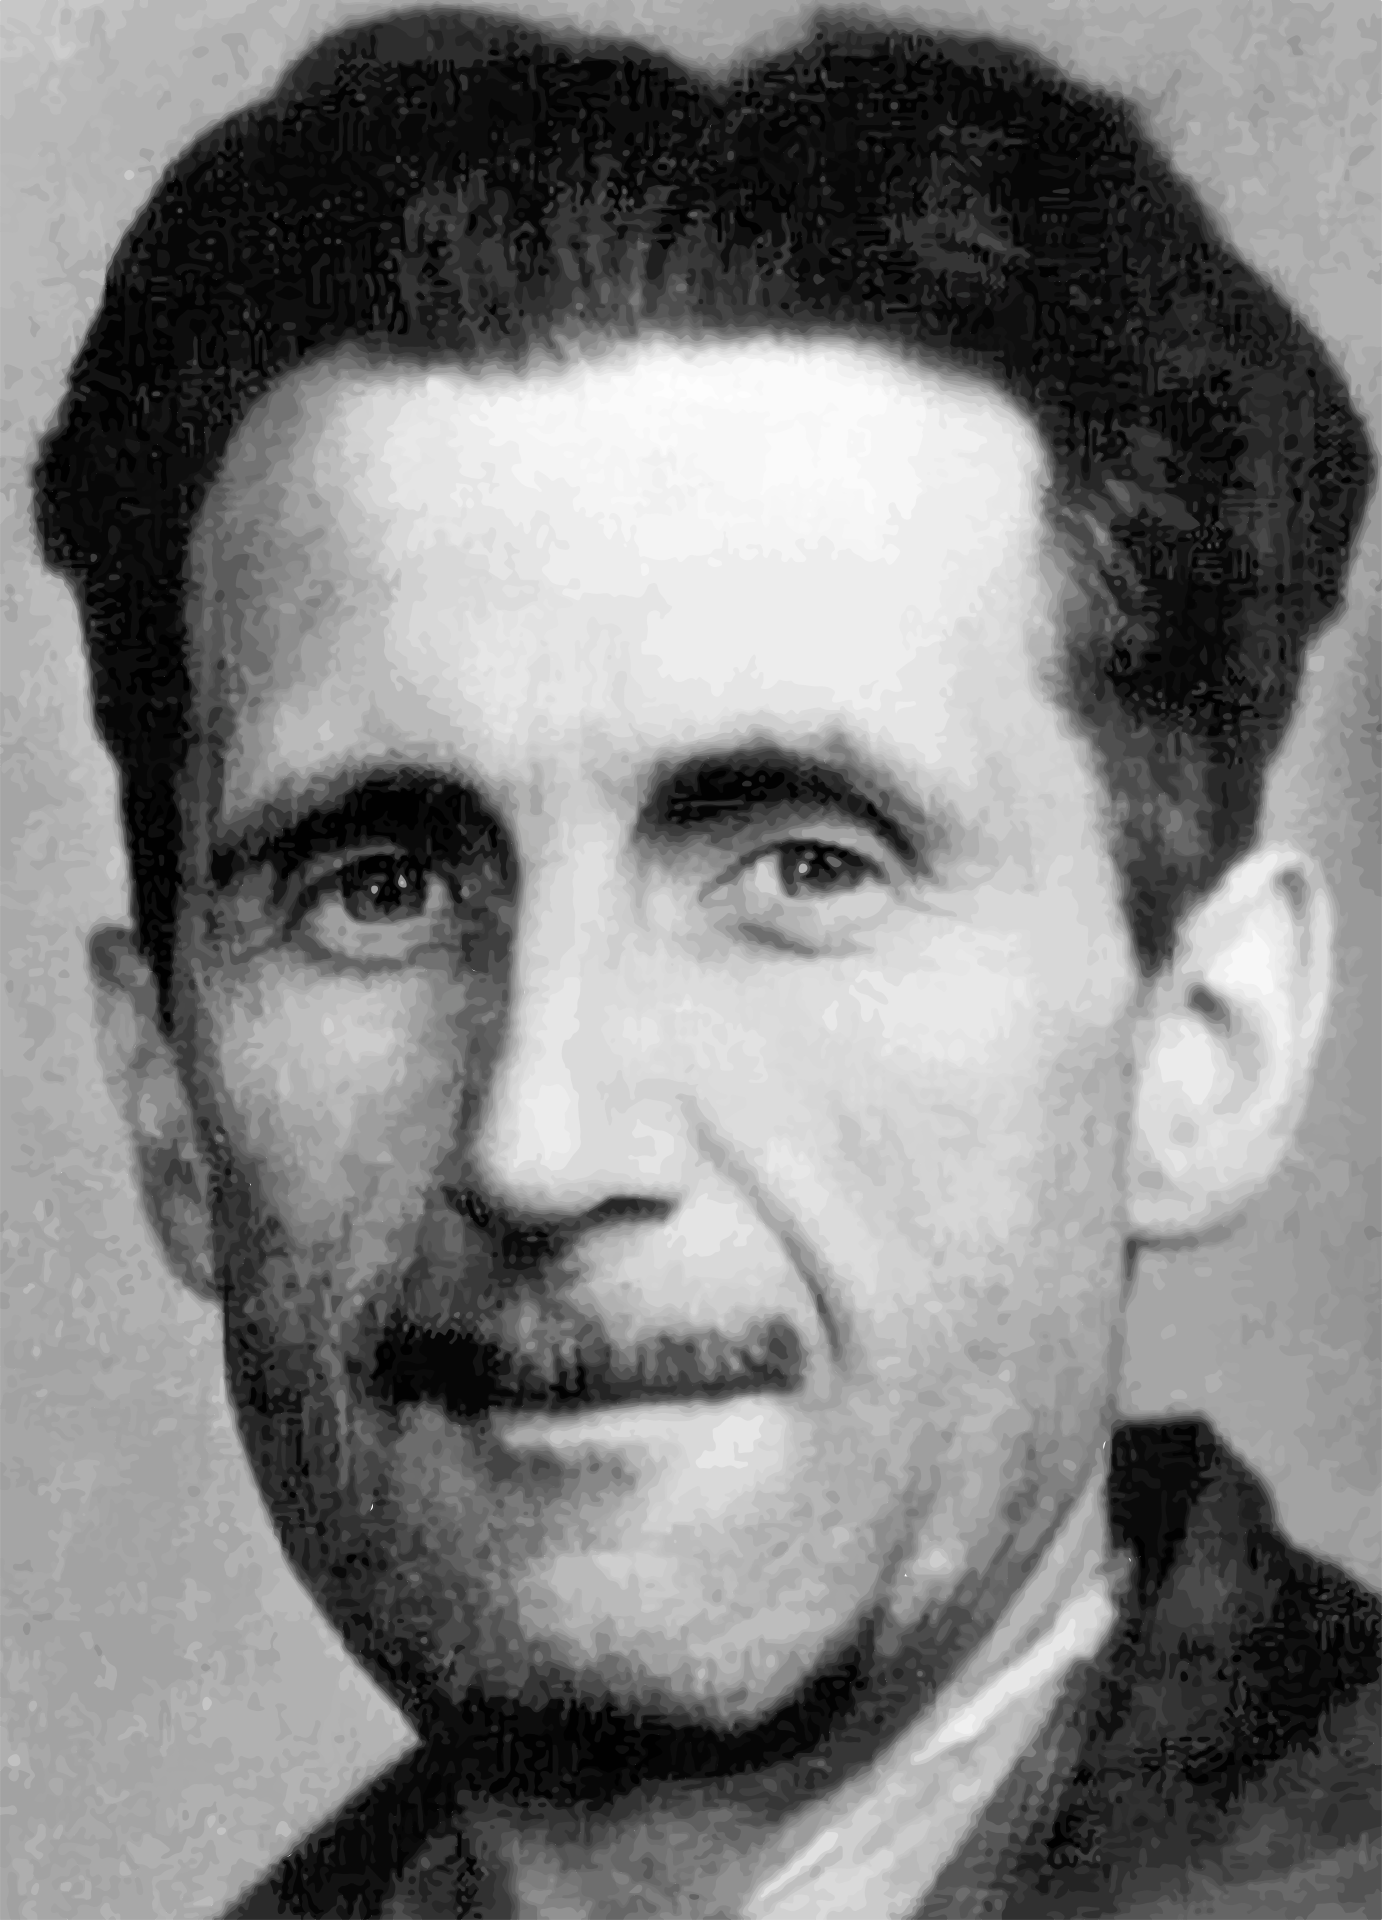 Black and white photo of George Orwell free image